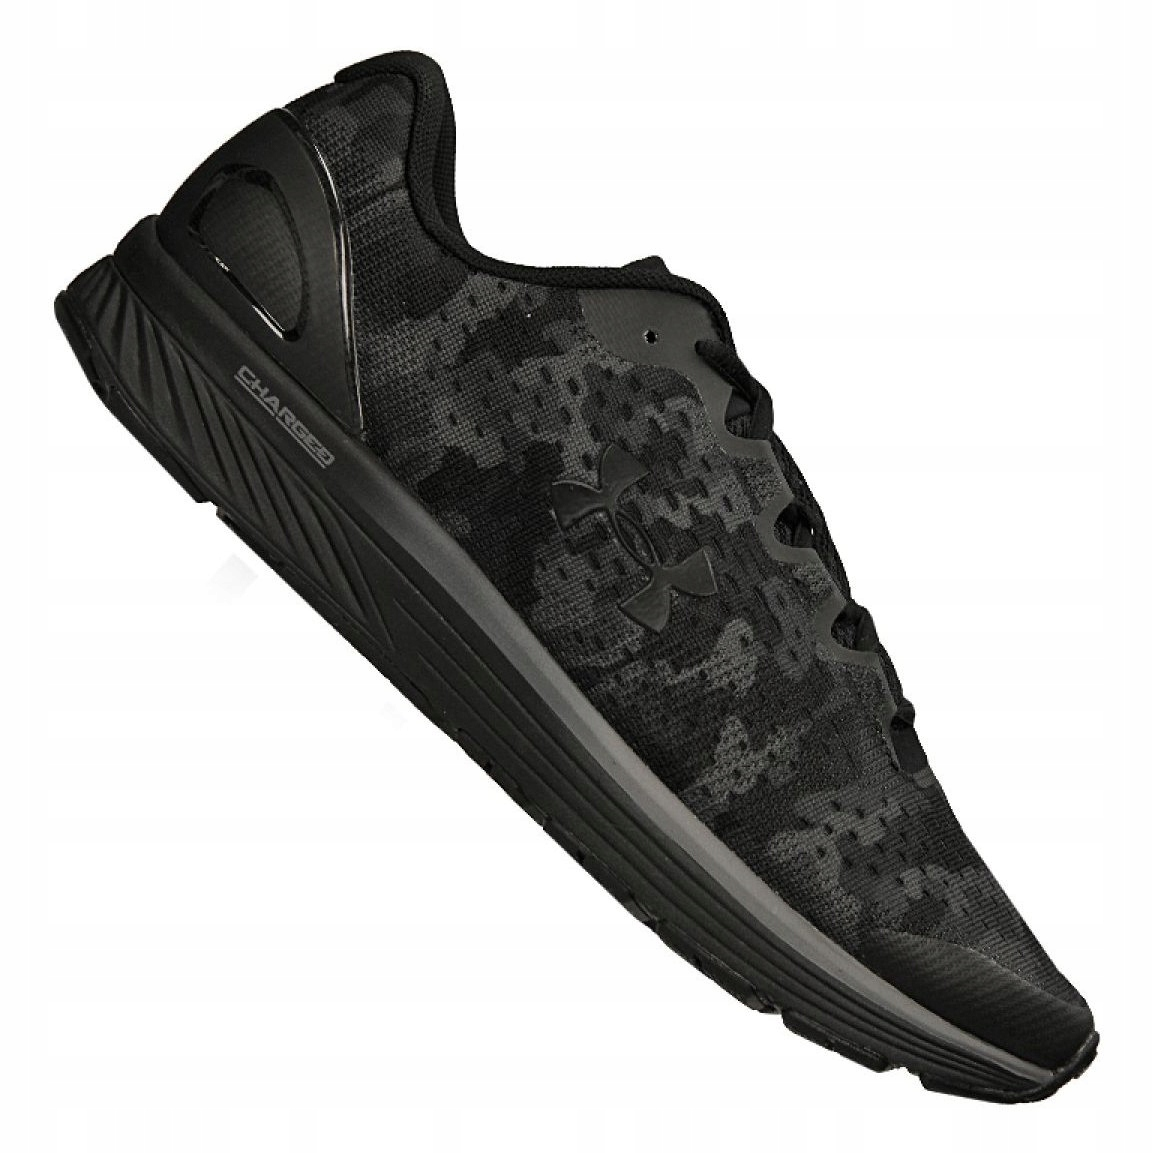 Buty biegowe Under Armour Charged Bandit 4 r.46